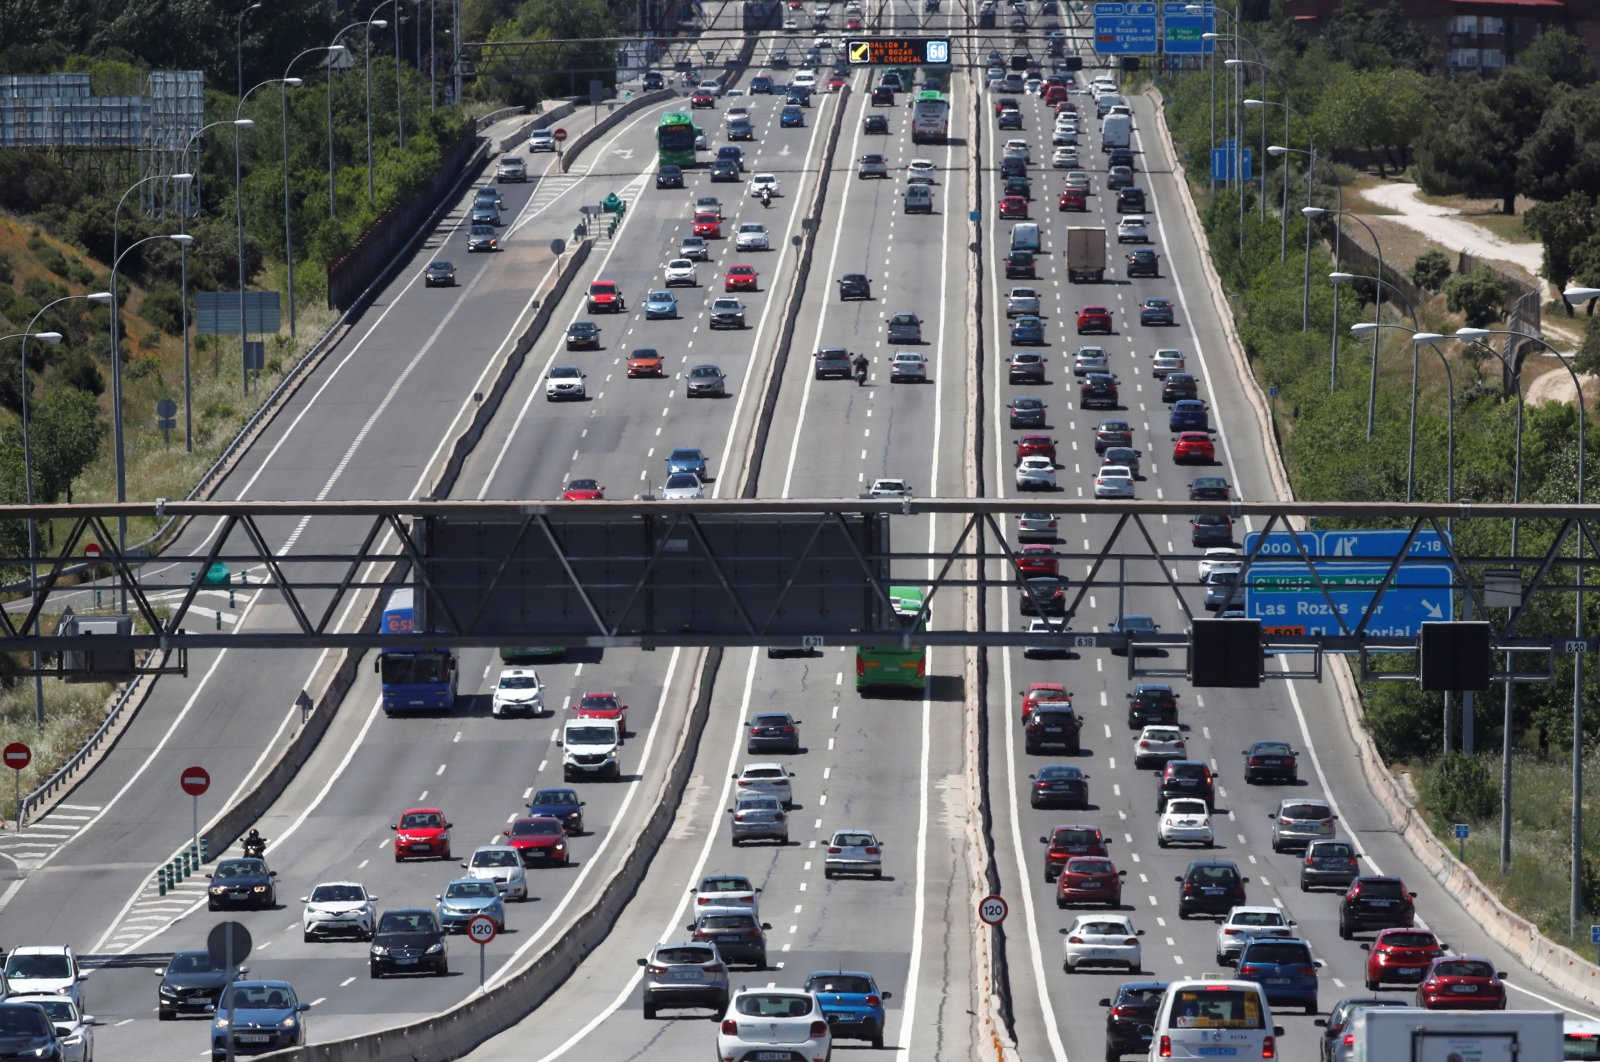 Vehicles are seen in a traffic jam leaving Madrid, Spain, May 14, 2021. (EPA Photo)